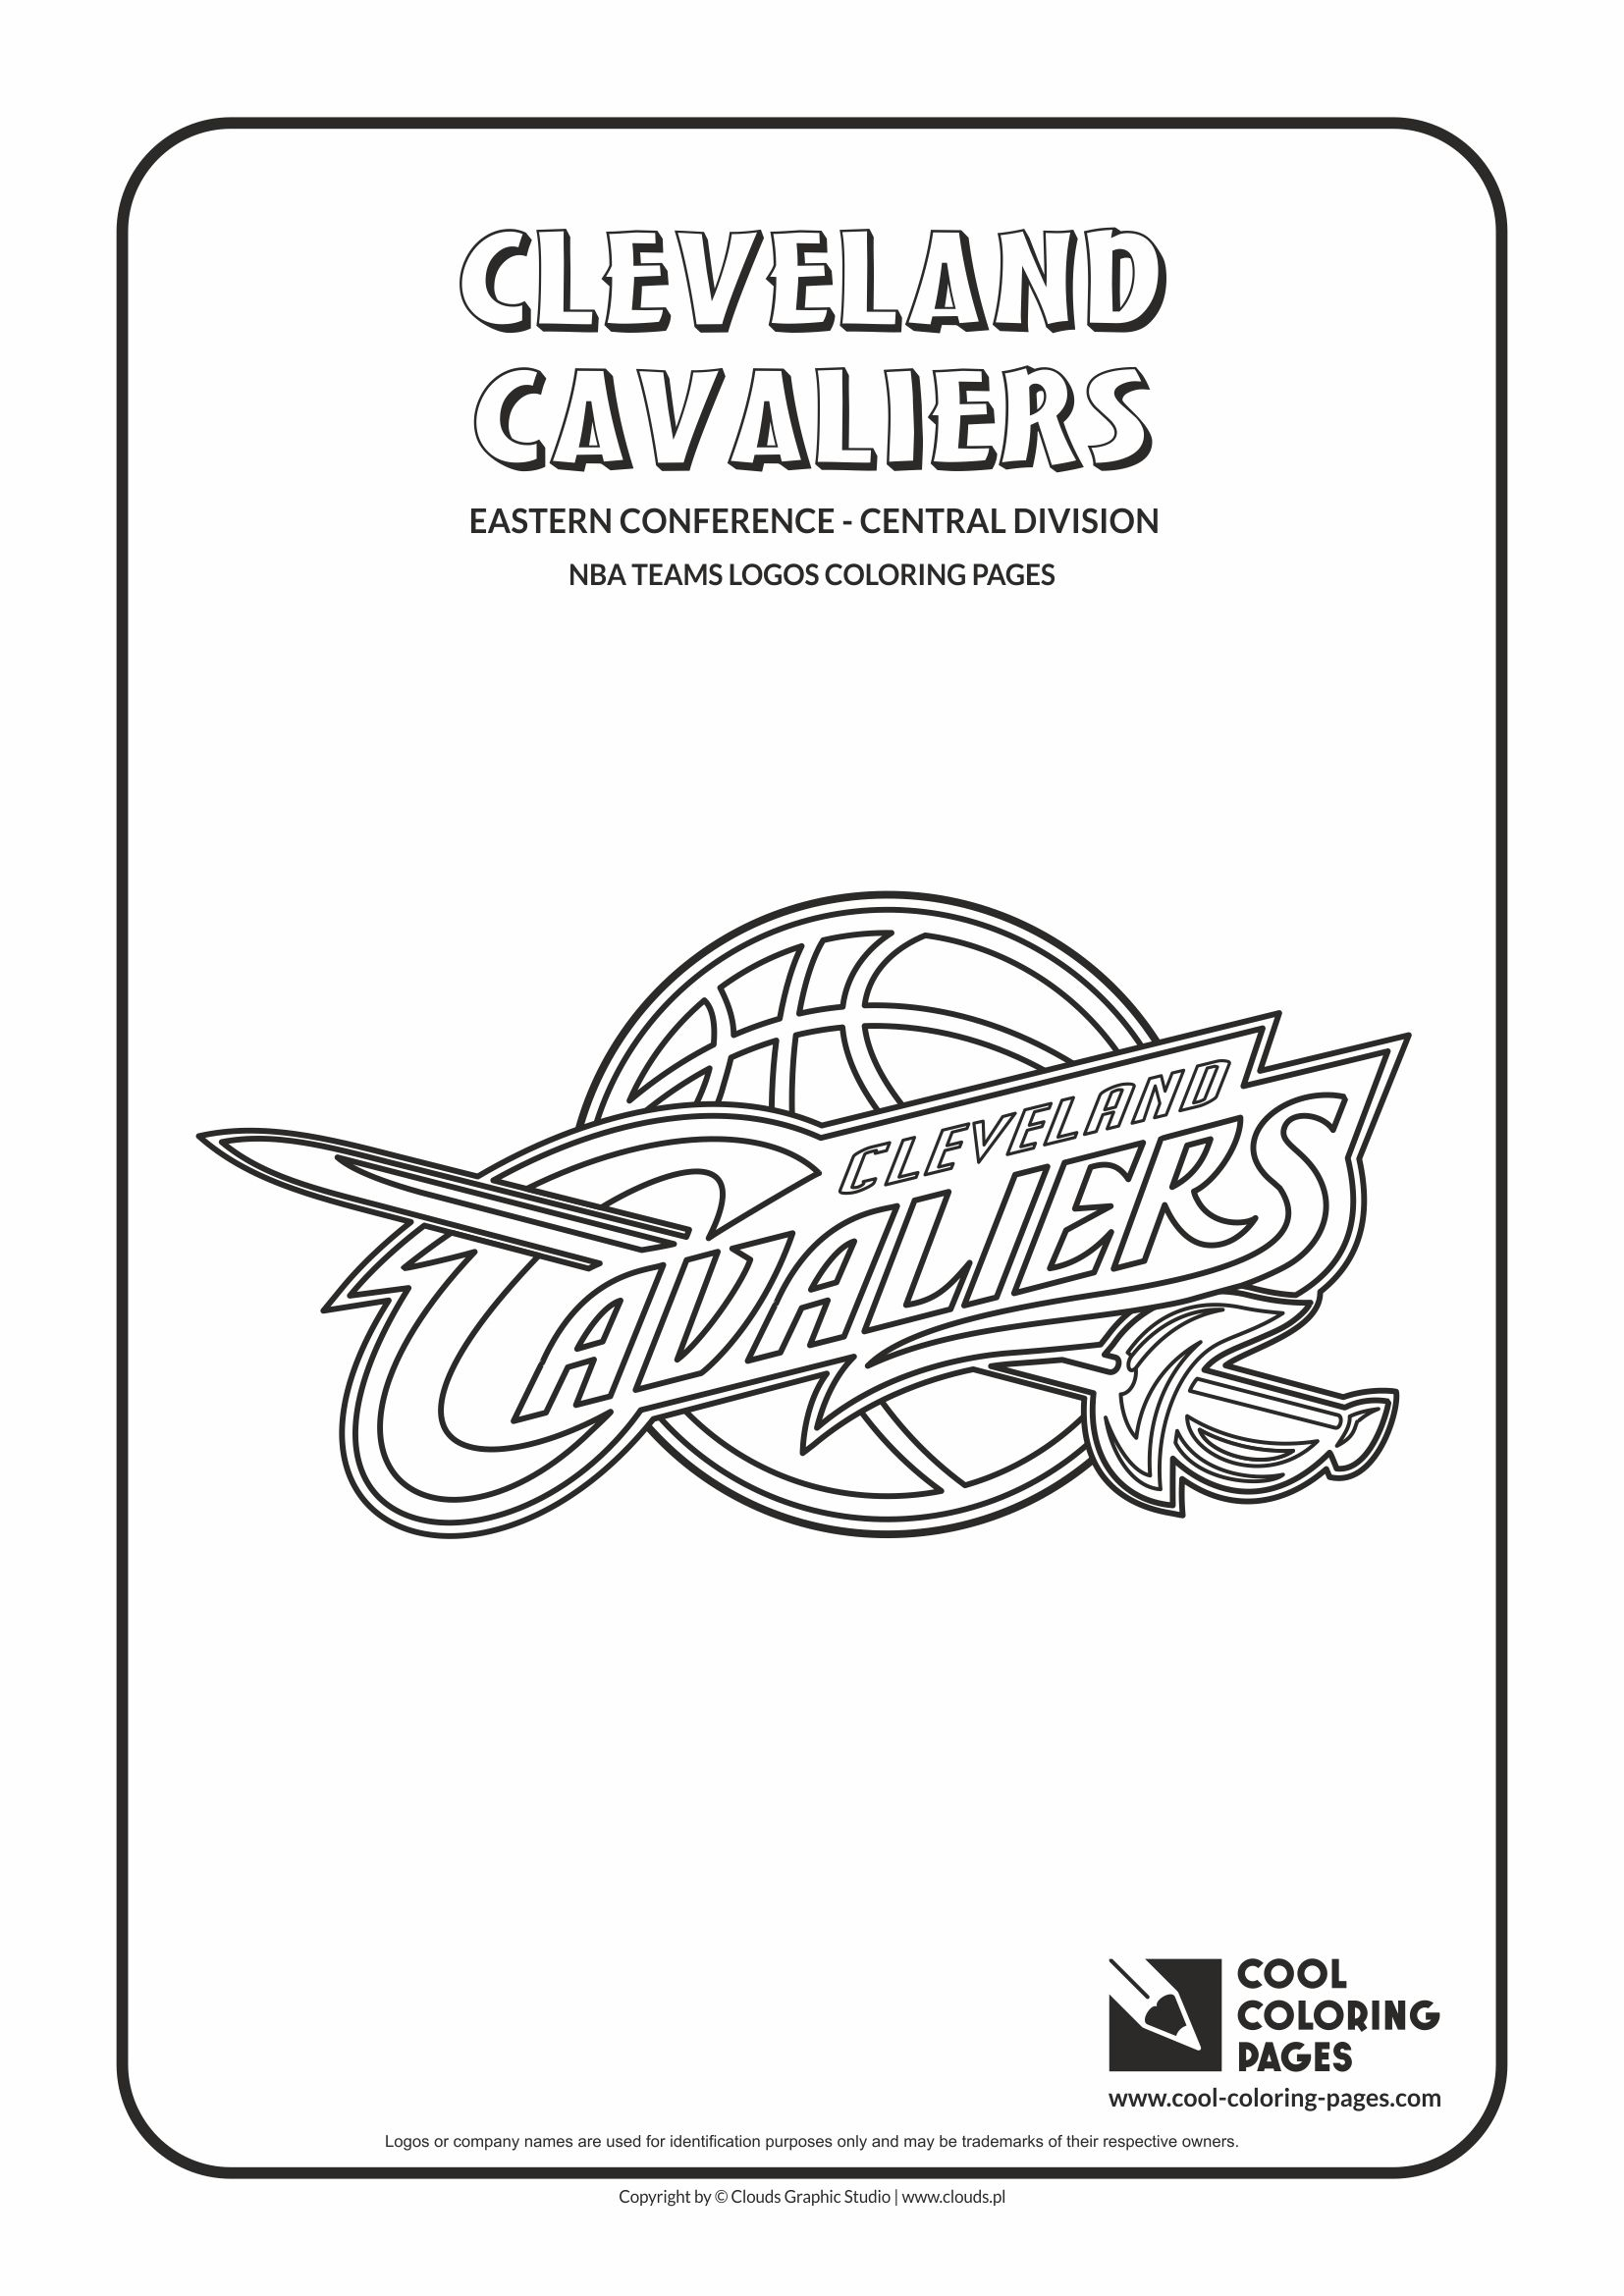 picture relating to Cavs Schedule Printable named 23 Cavs Coloring Internet pages Printable Absolutely free COLORING Internet pages - Element 2